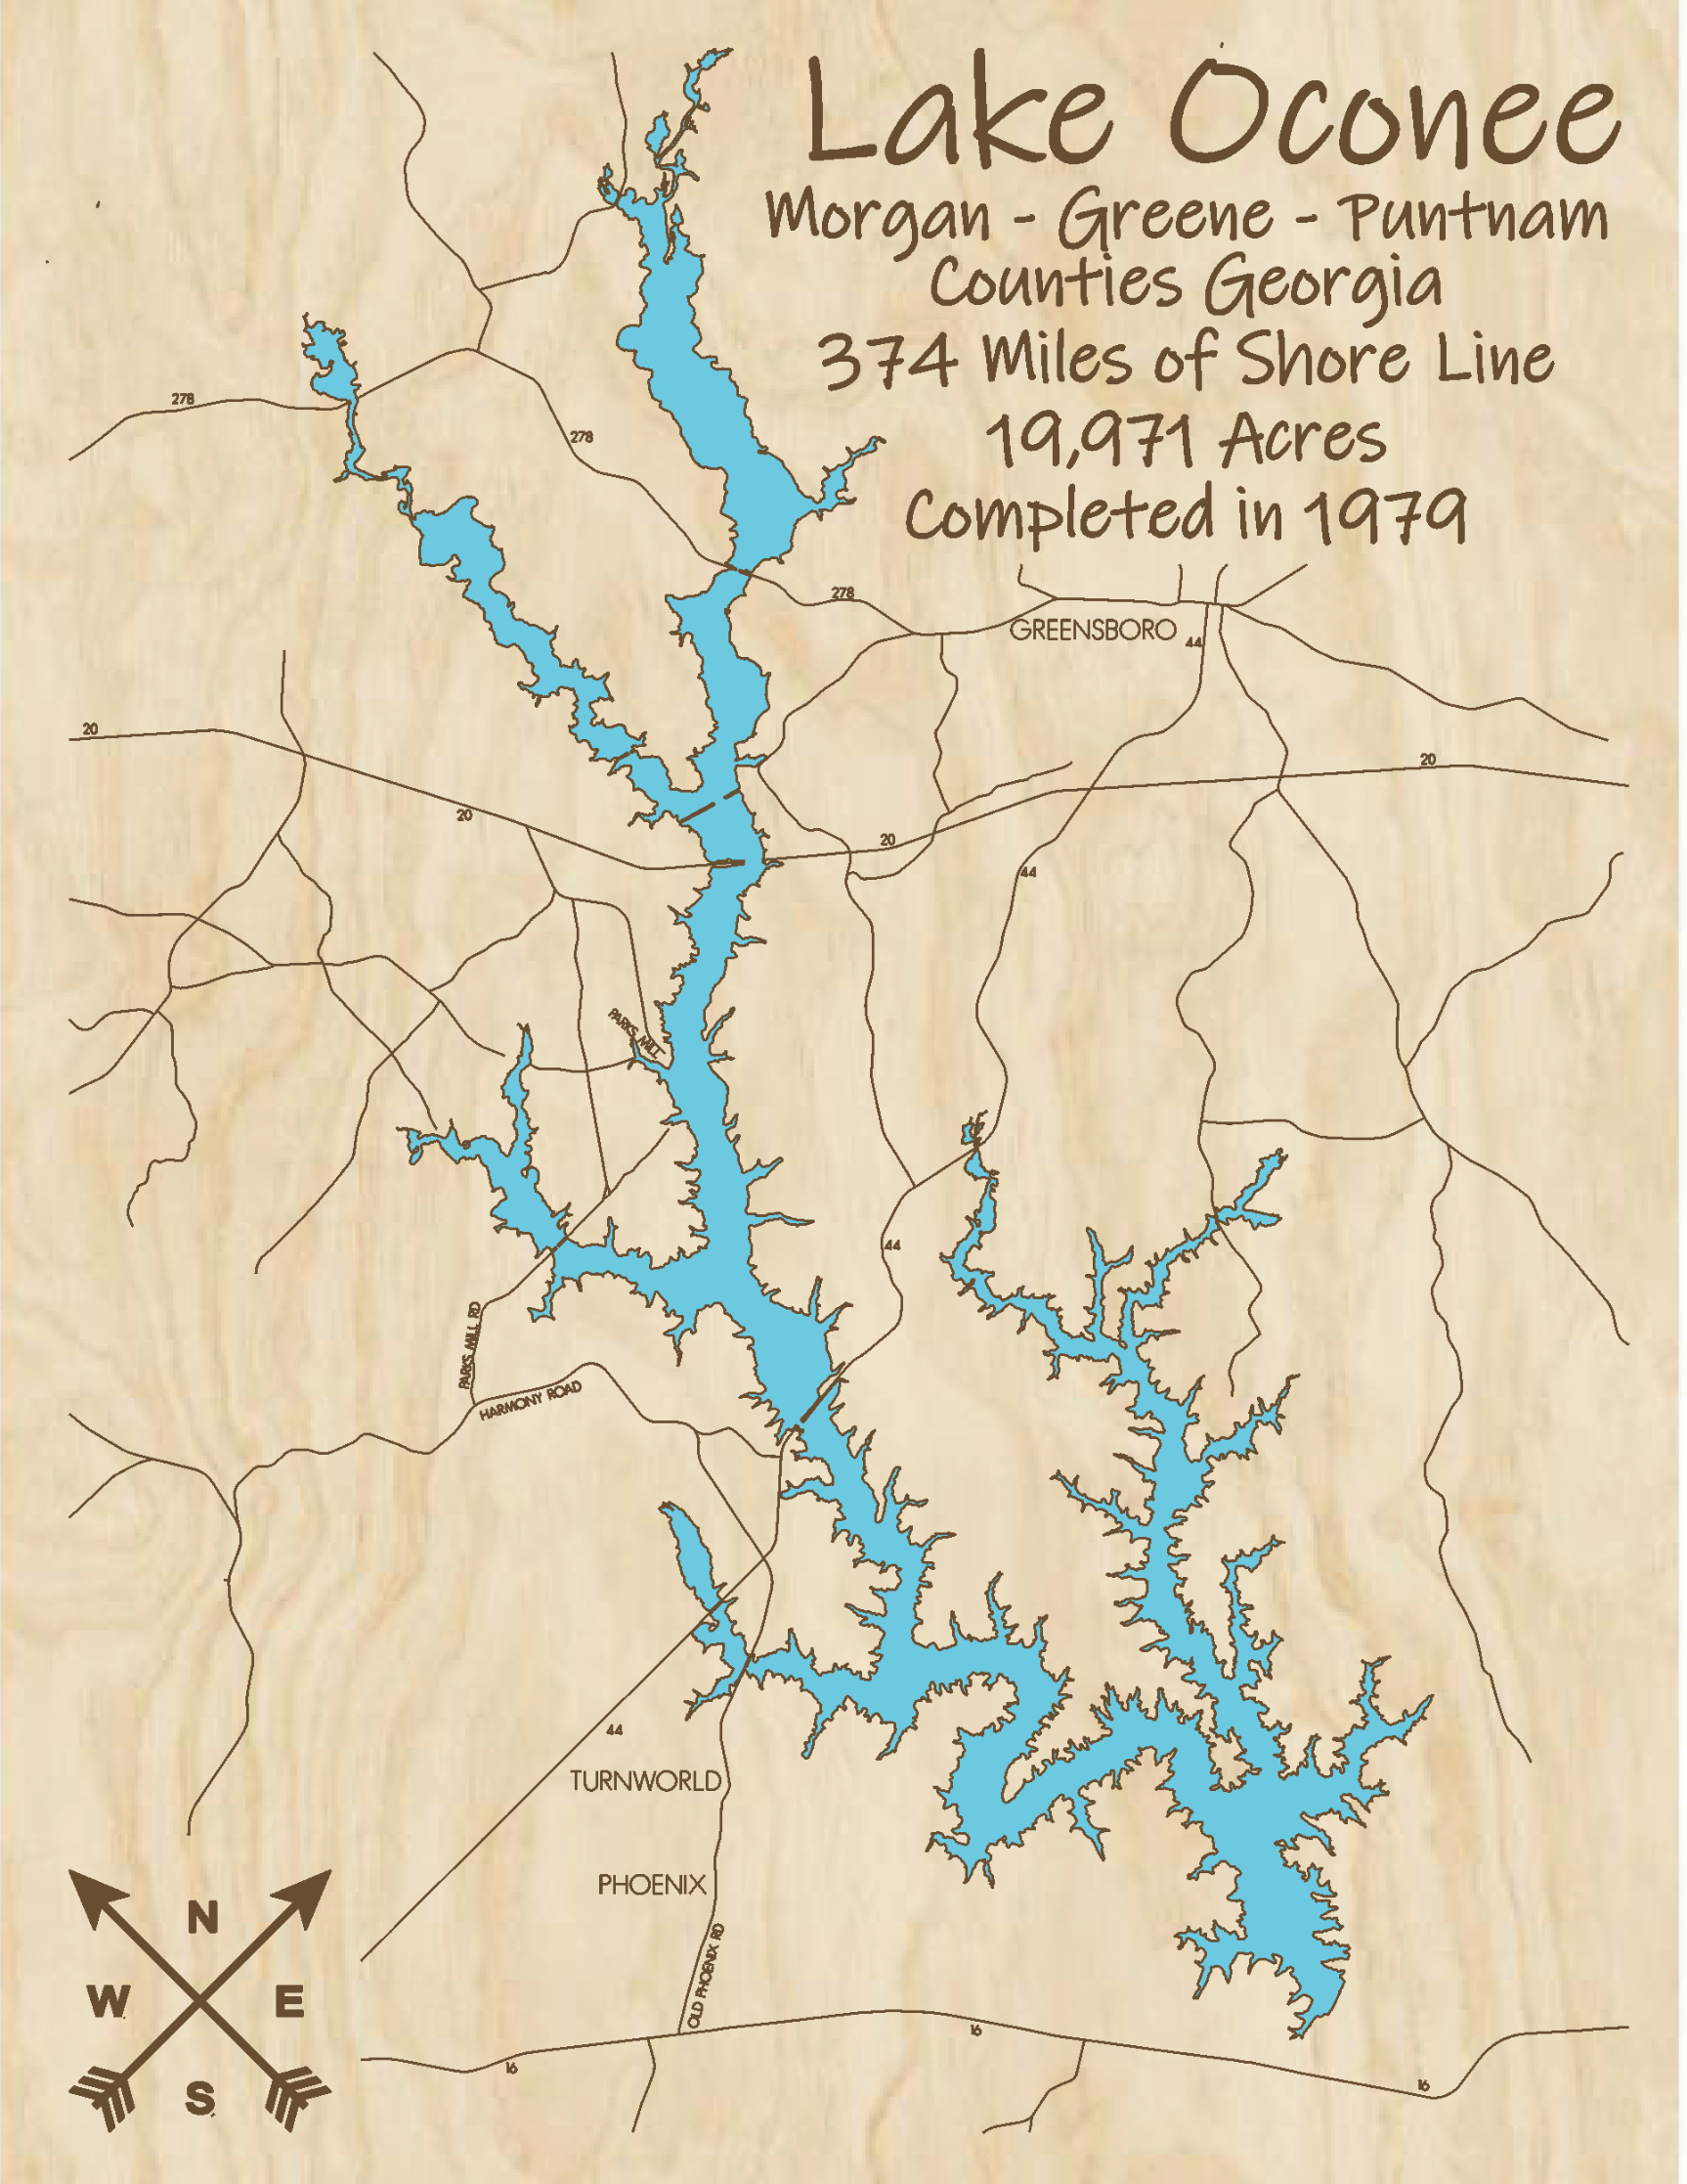 Lake Oconee Multi-layered Wood Lake Map